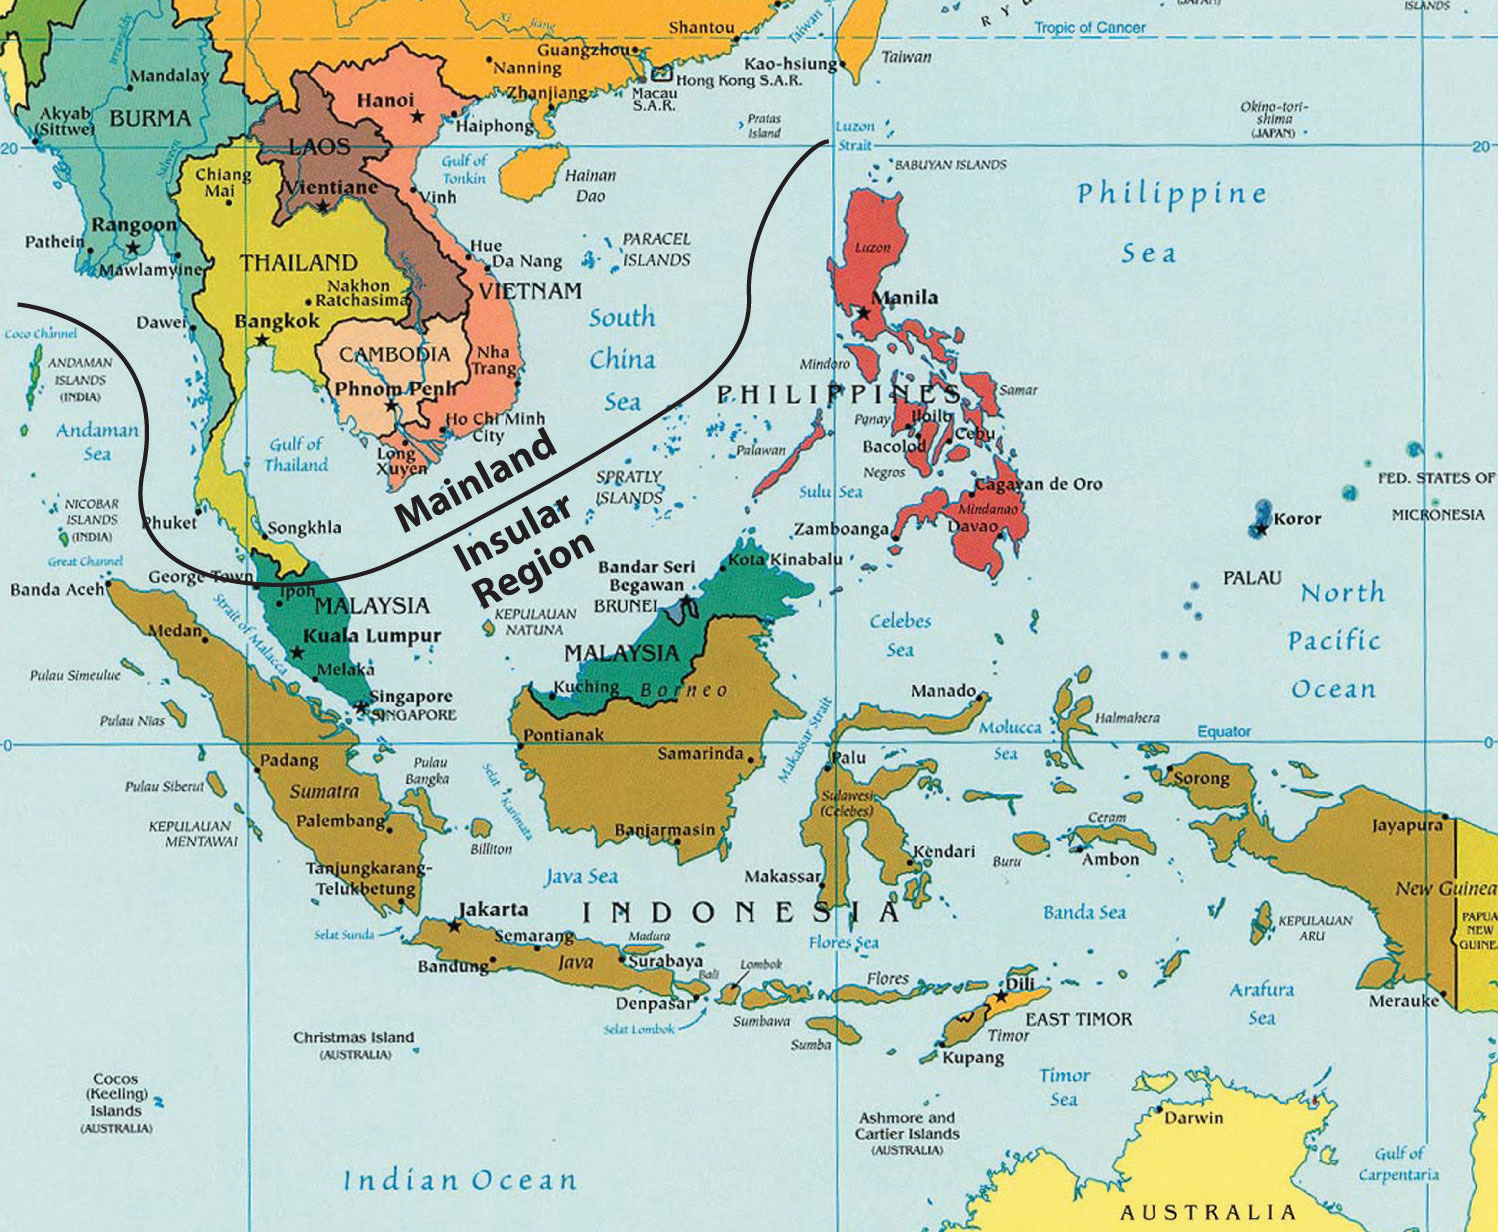 Figure 11.1 Southeast Asia: